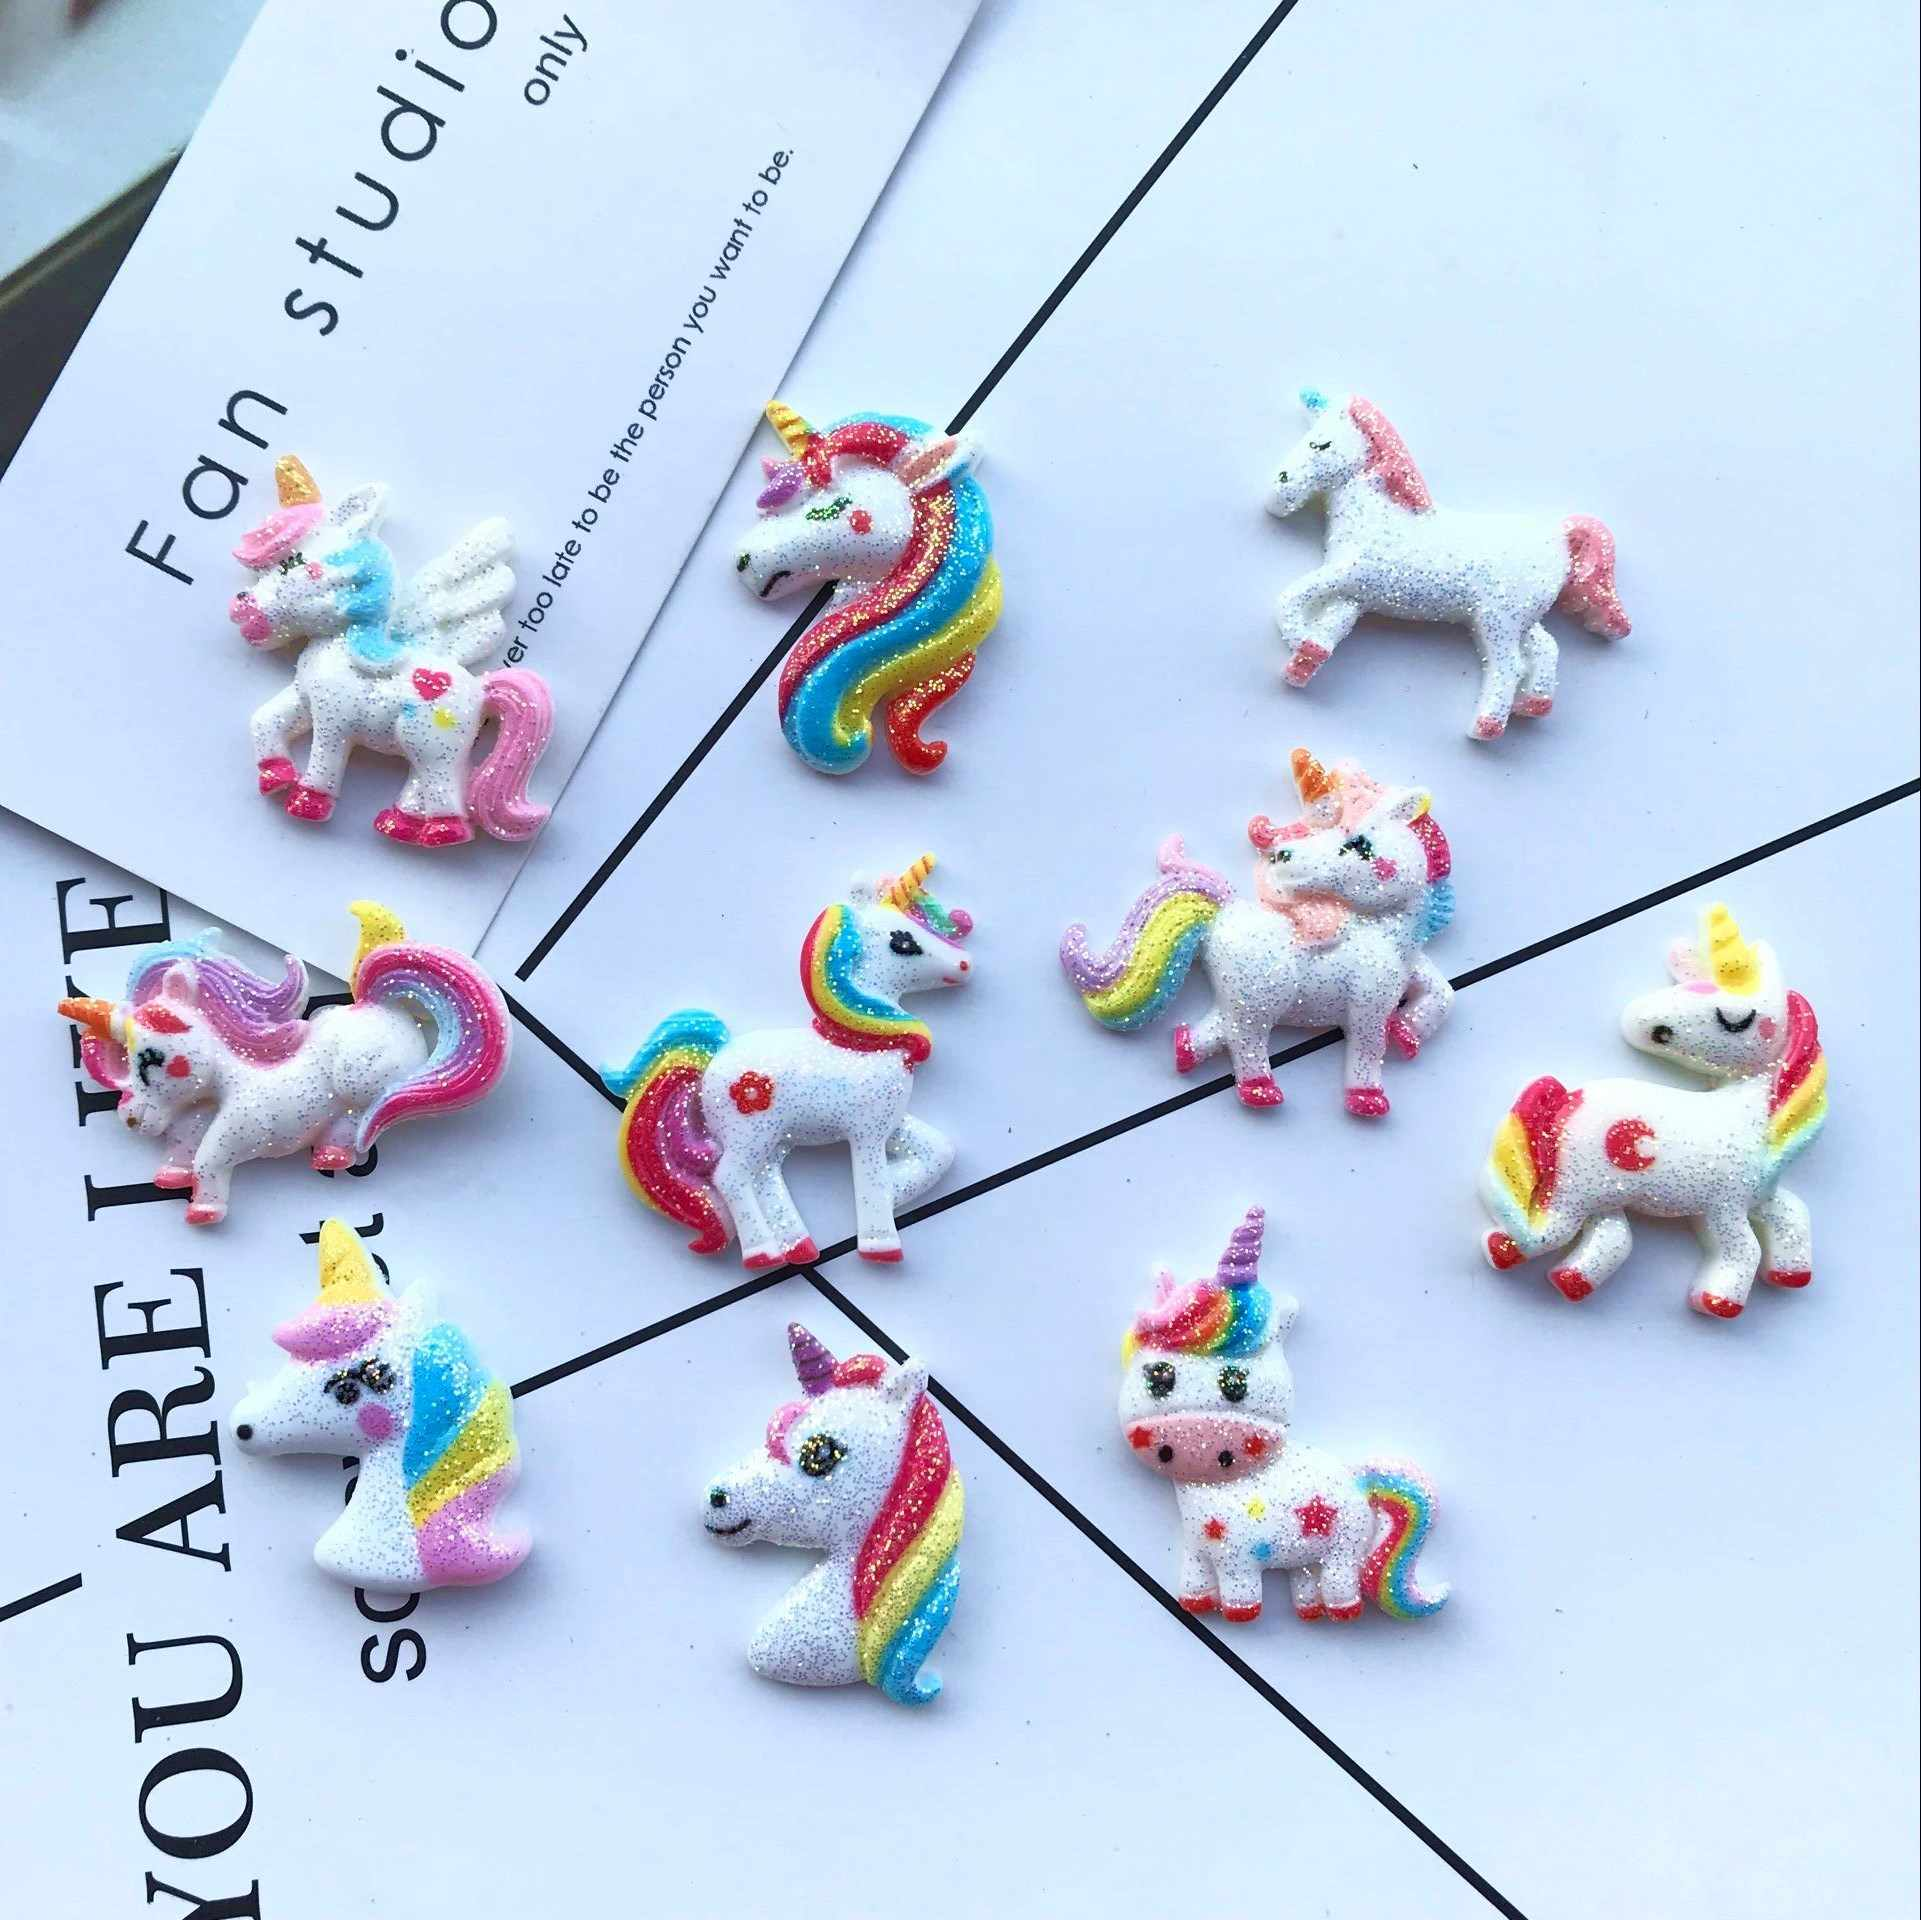 35mm Flat back resin Colorful unicorns earring charms resin  necklace pendant keychain charms for Christmas  DIY decoration